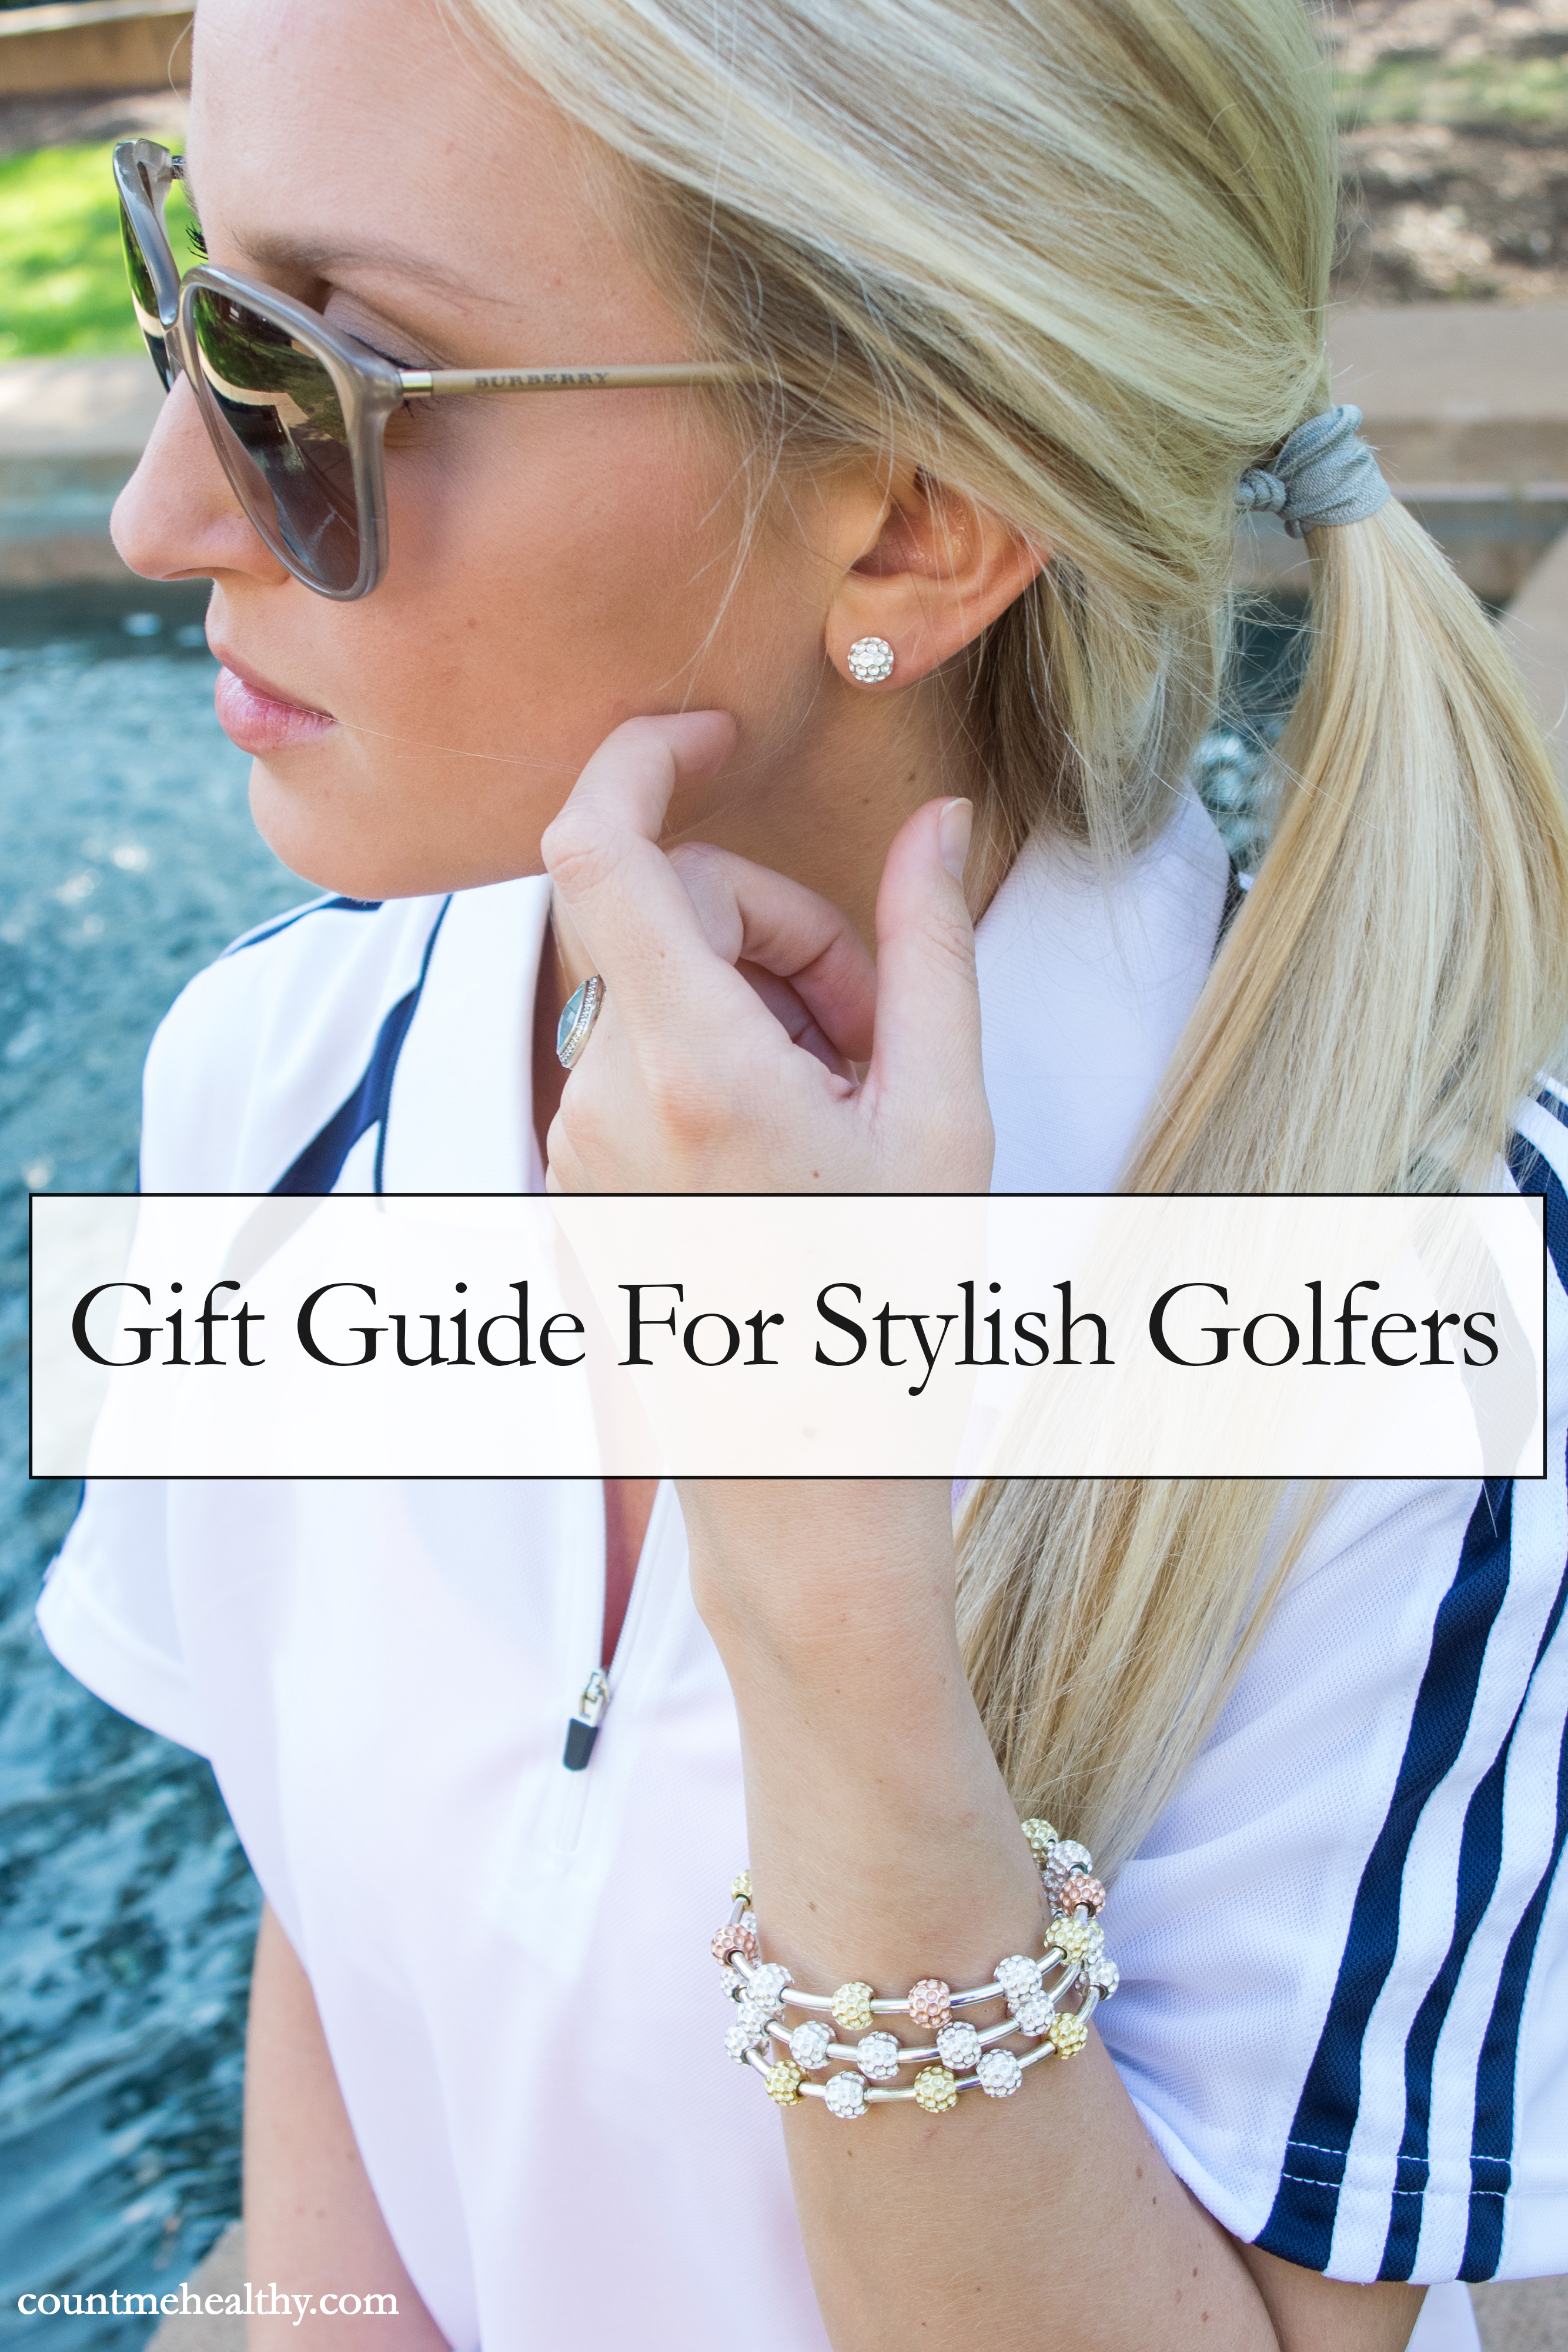 Stylish Gifts For Women Who Golf via Count Me Healthy